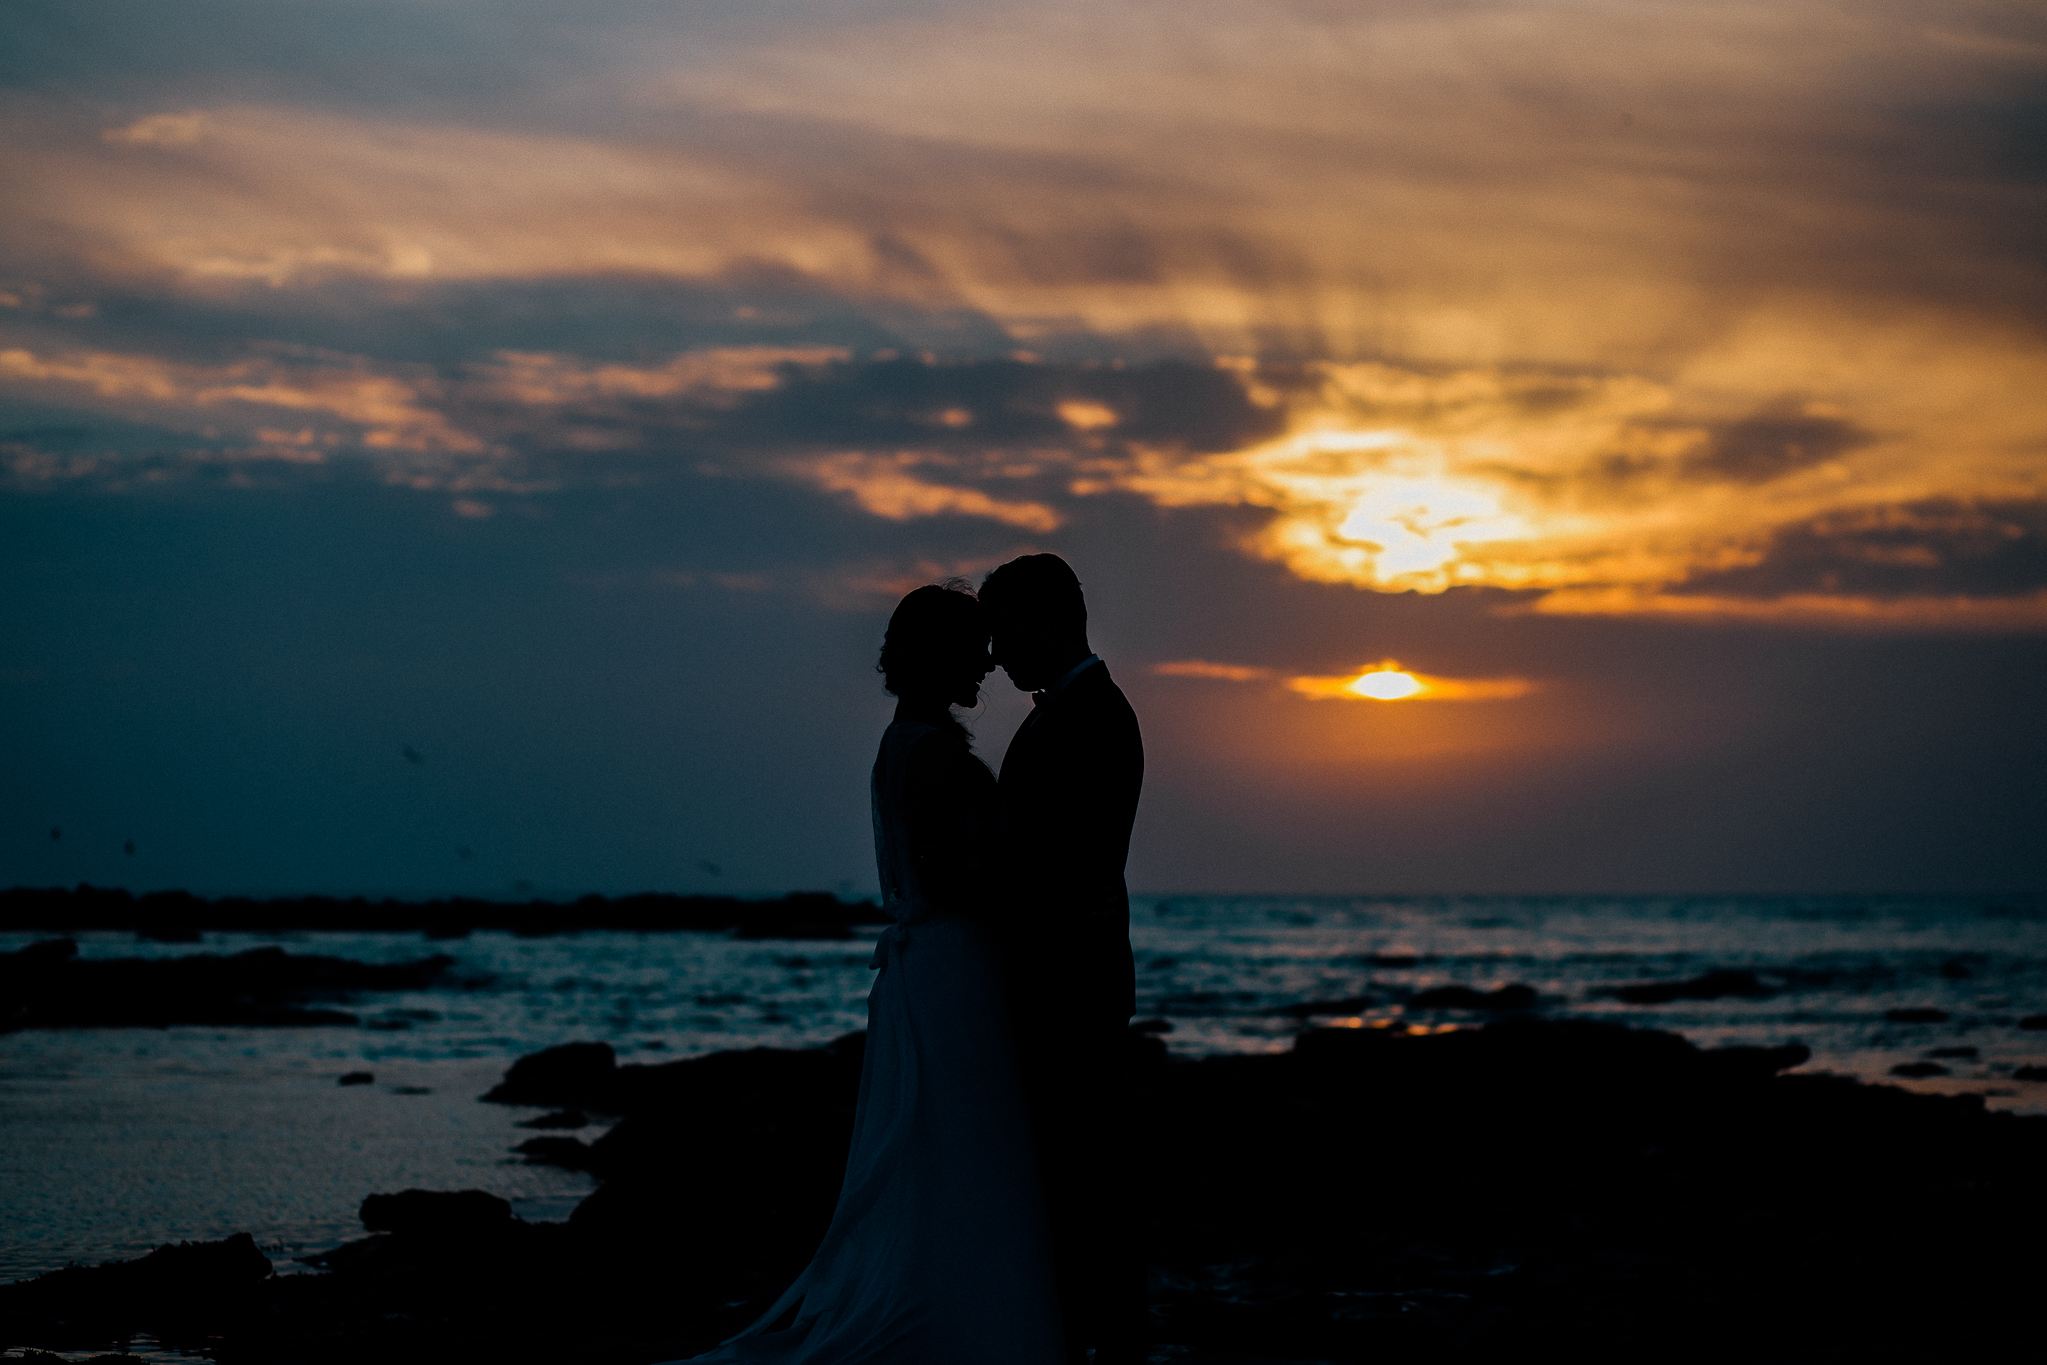 Day After, After Day, Mariage Côte d'Opale, Photographe de mariage Côte d'Opale, Dixie Martin Photography, plage, beach, sunset, coucher